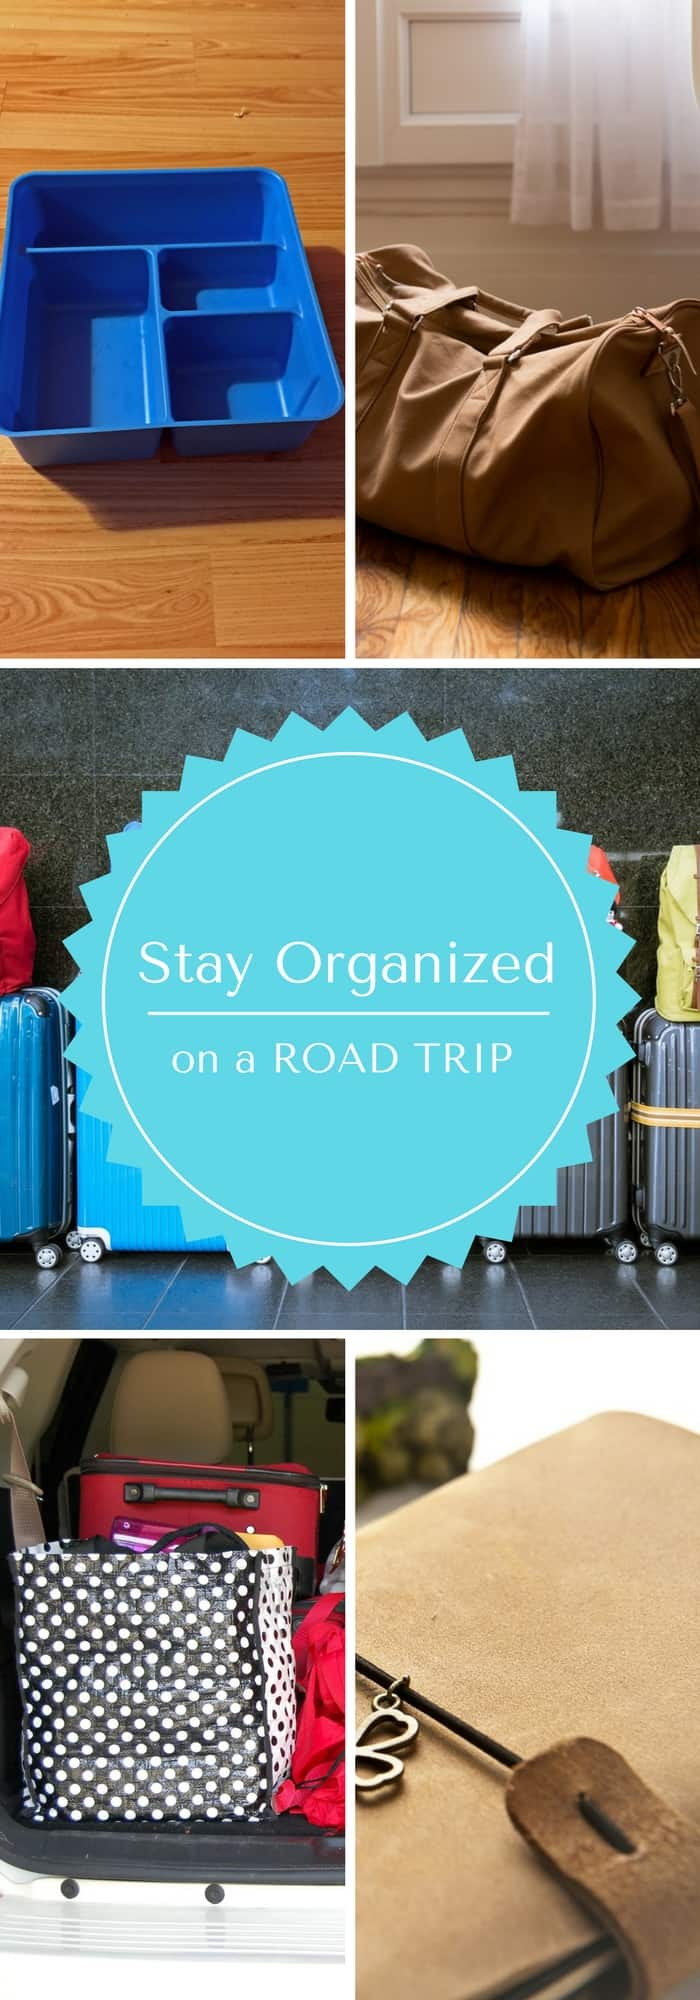 stay organized on a road trip